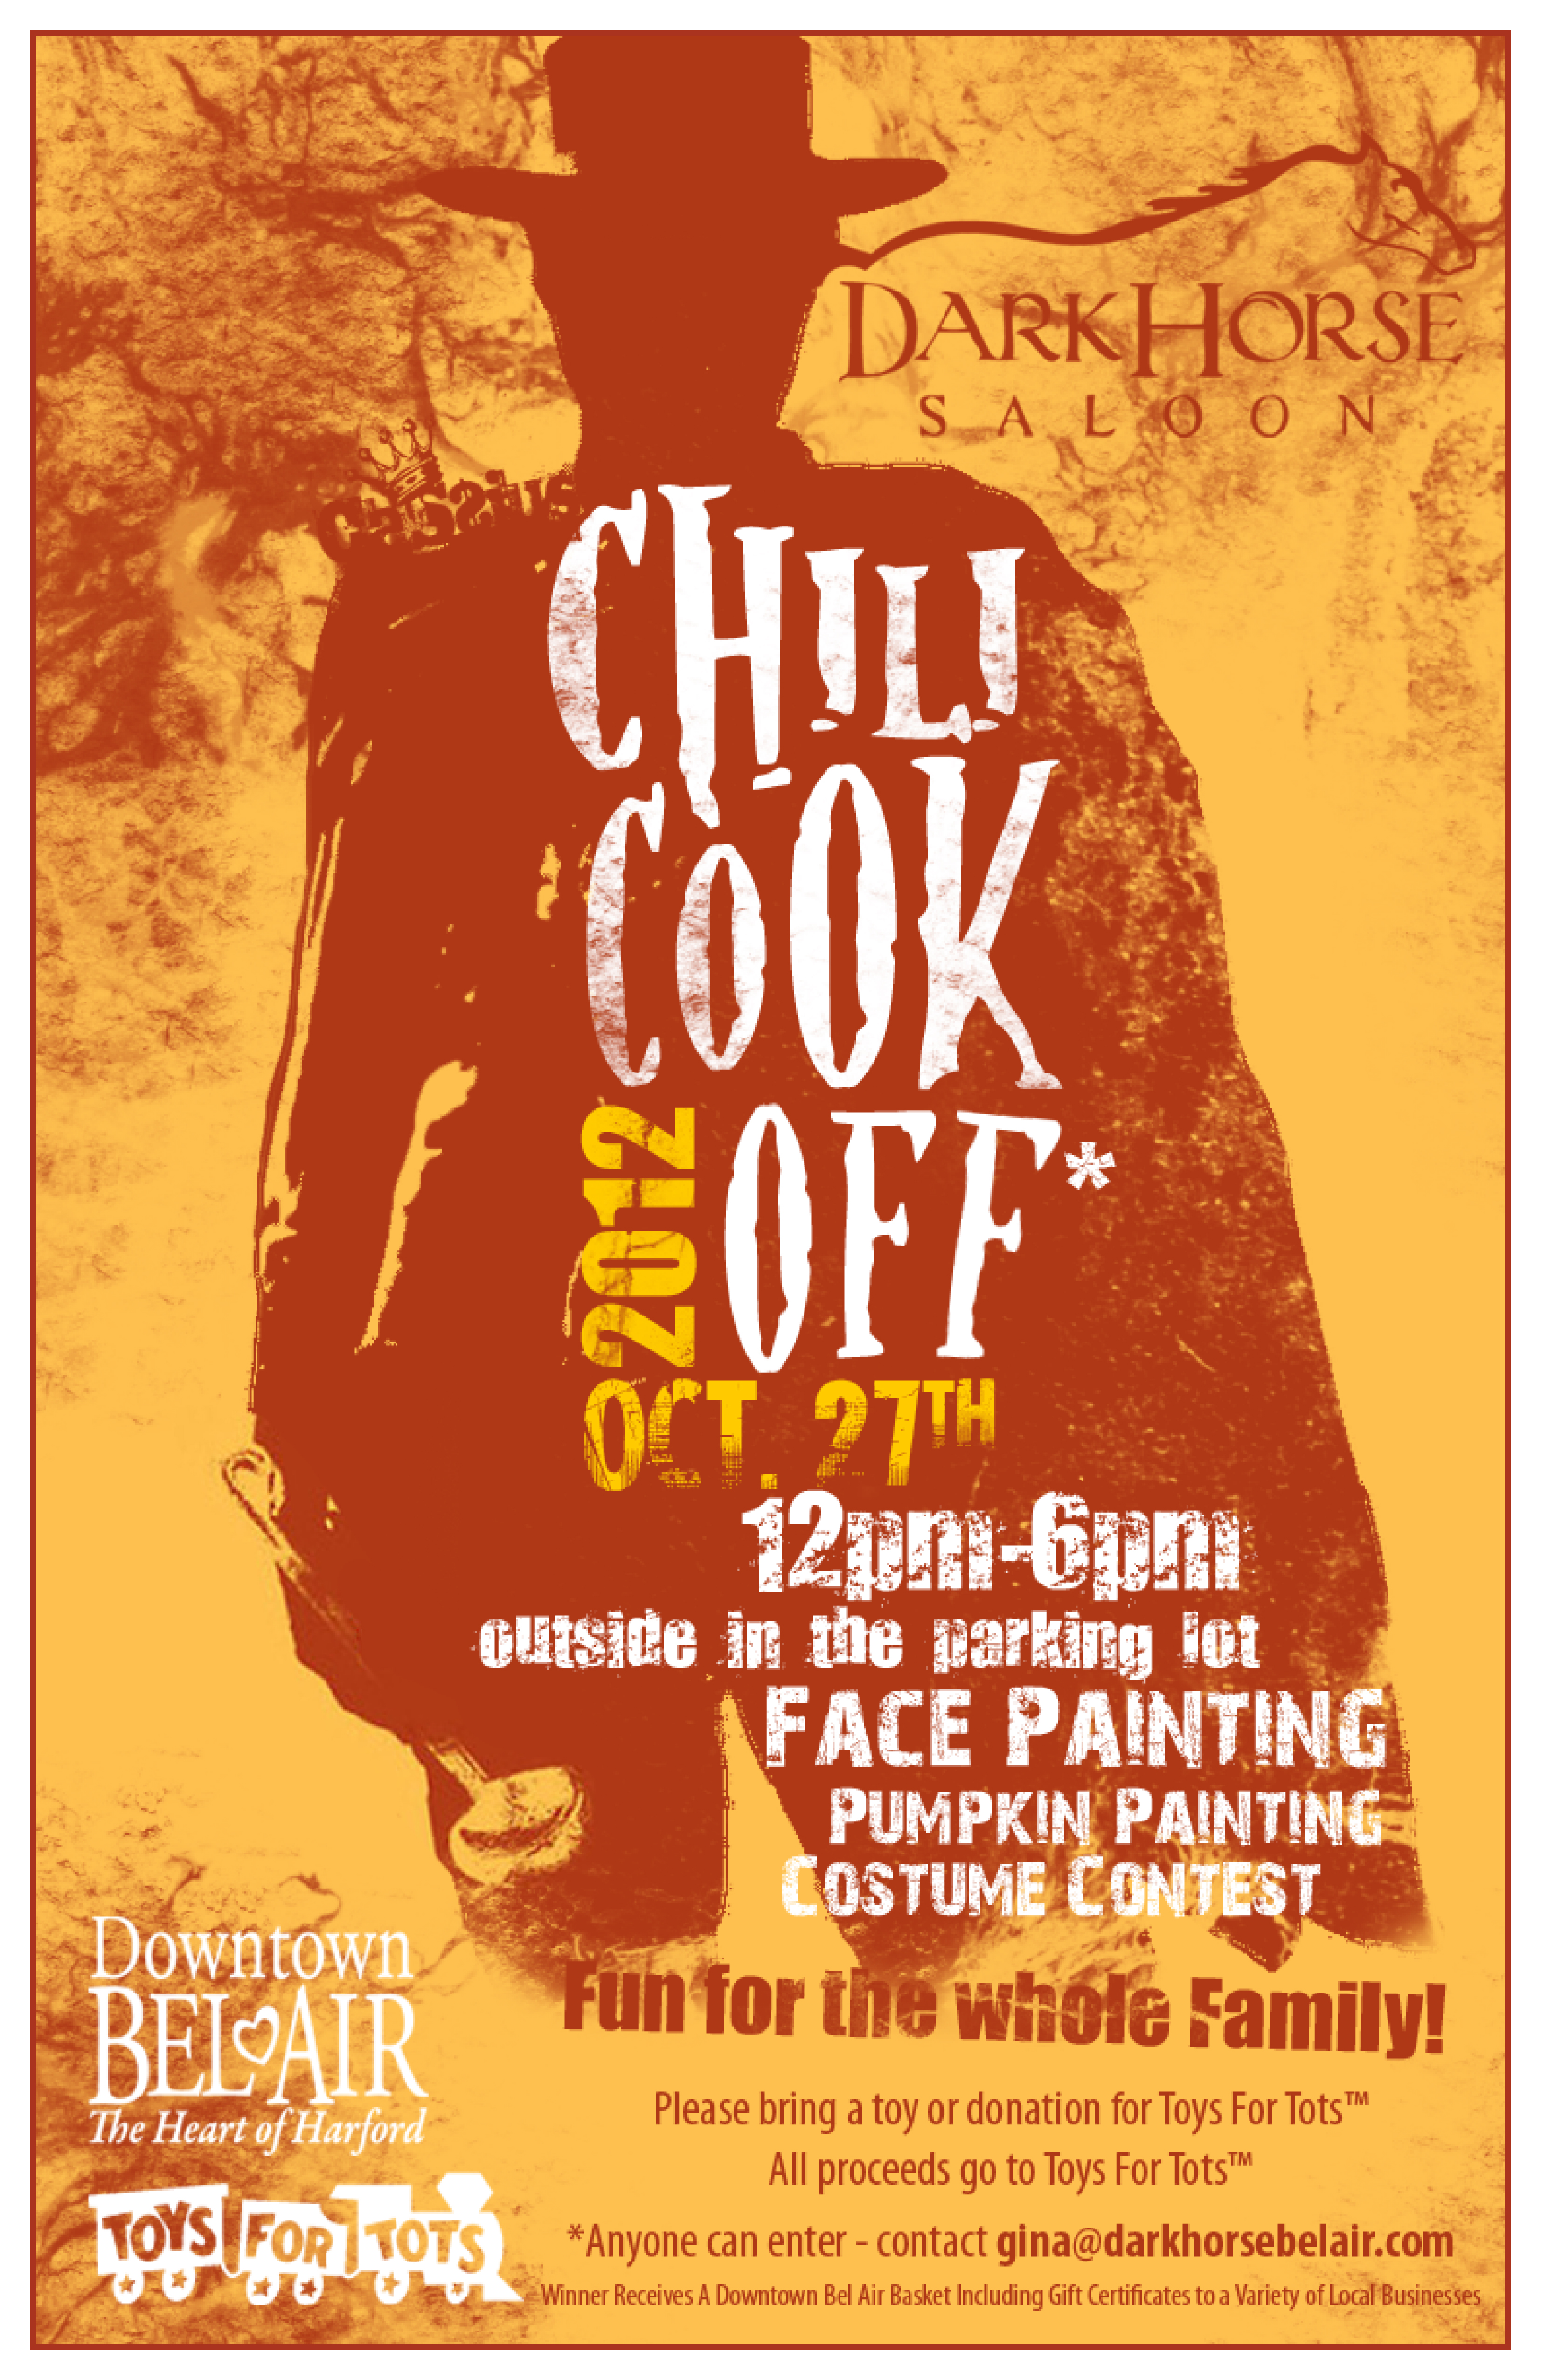 chili cook off fundraiser for toys for tots at dark horse saloon in bel air oct 27